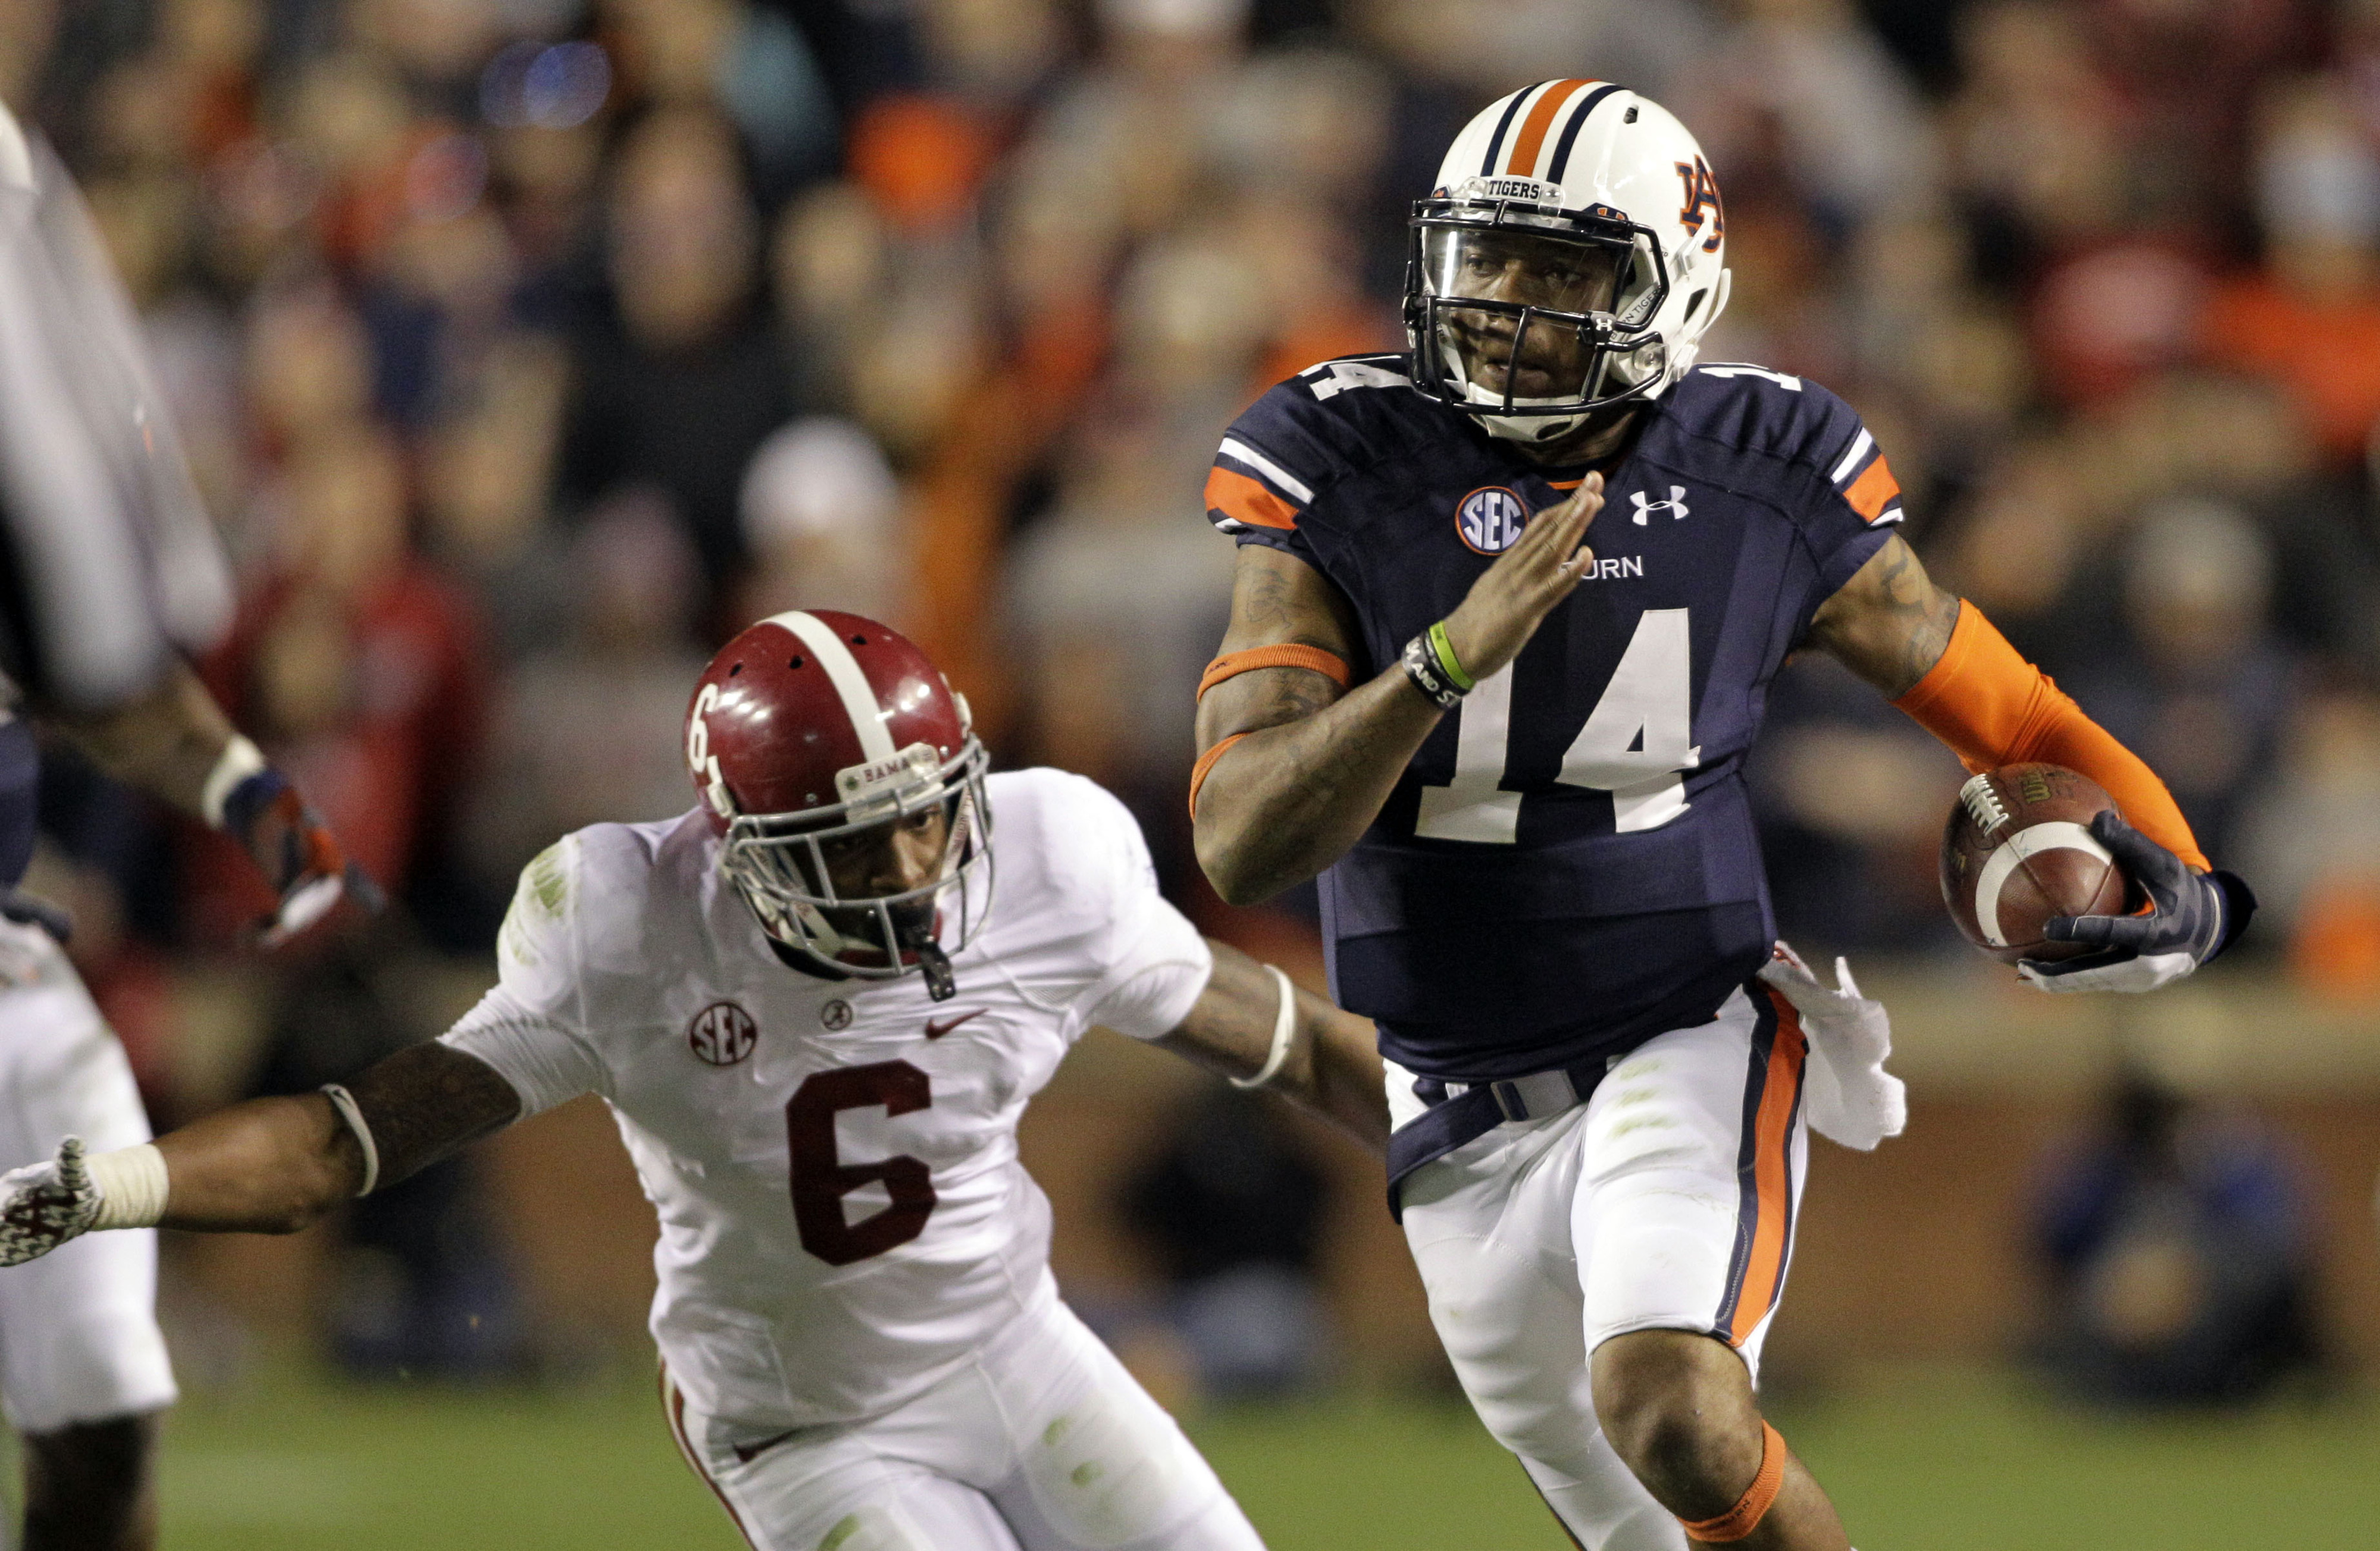 Eight 2013 College Football Playoff brackets, from 4 to 32 teams